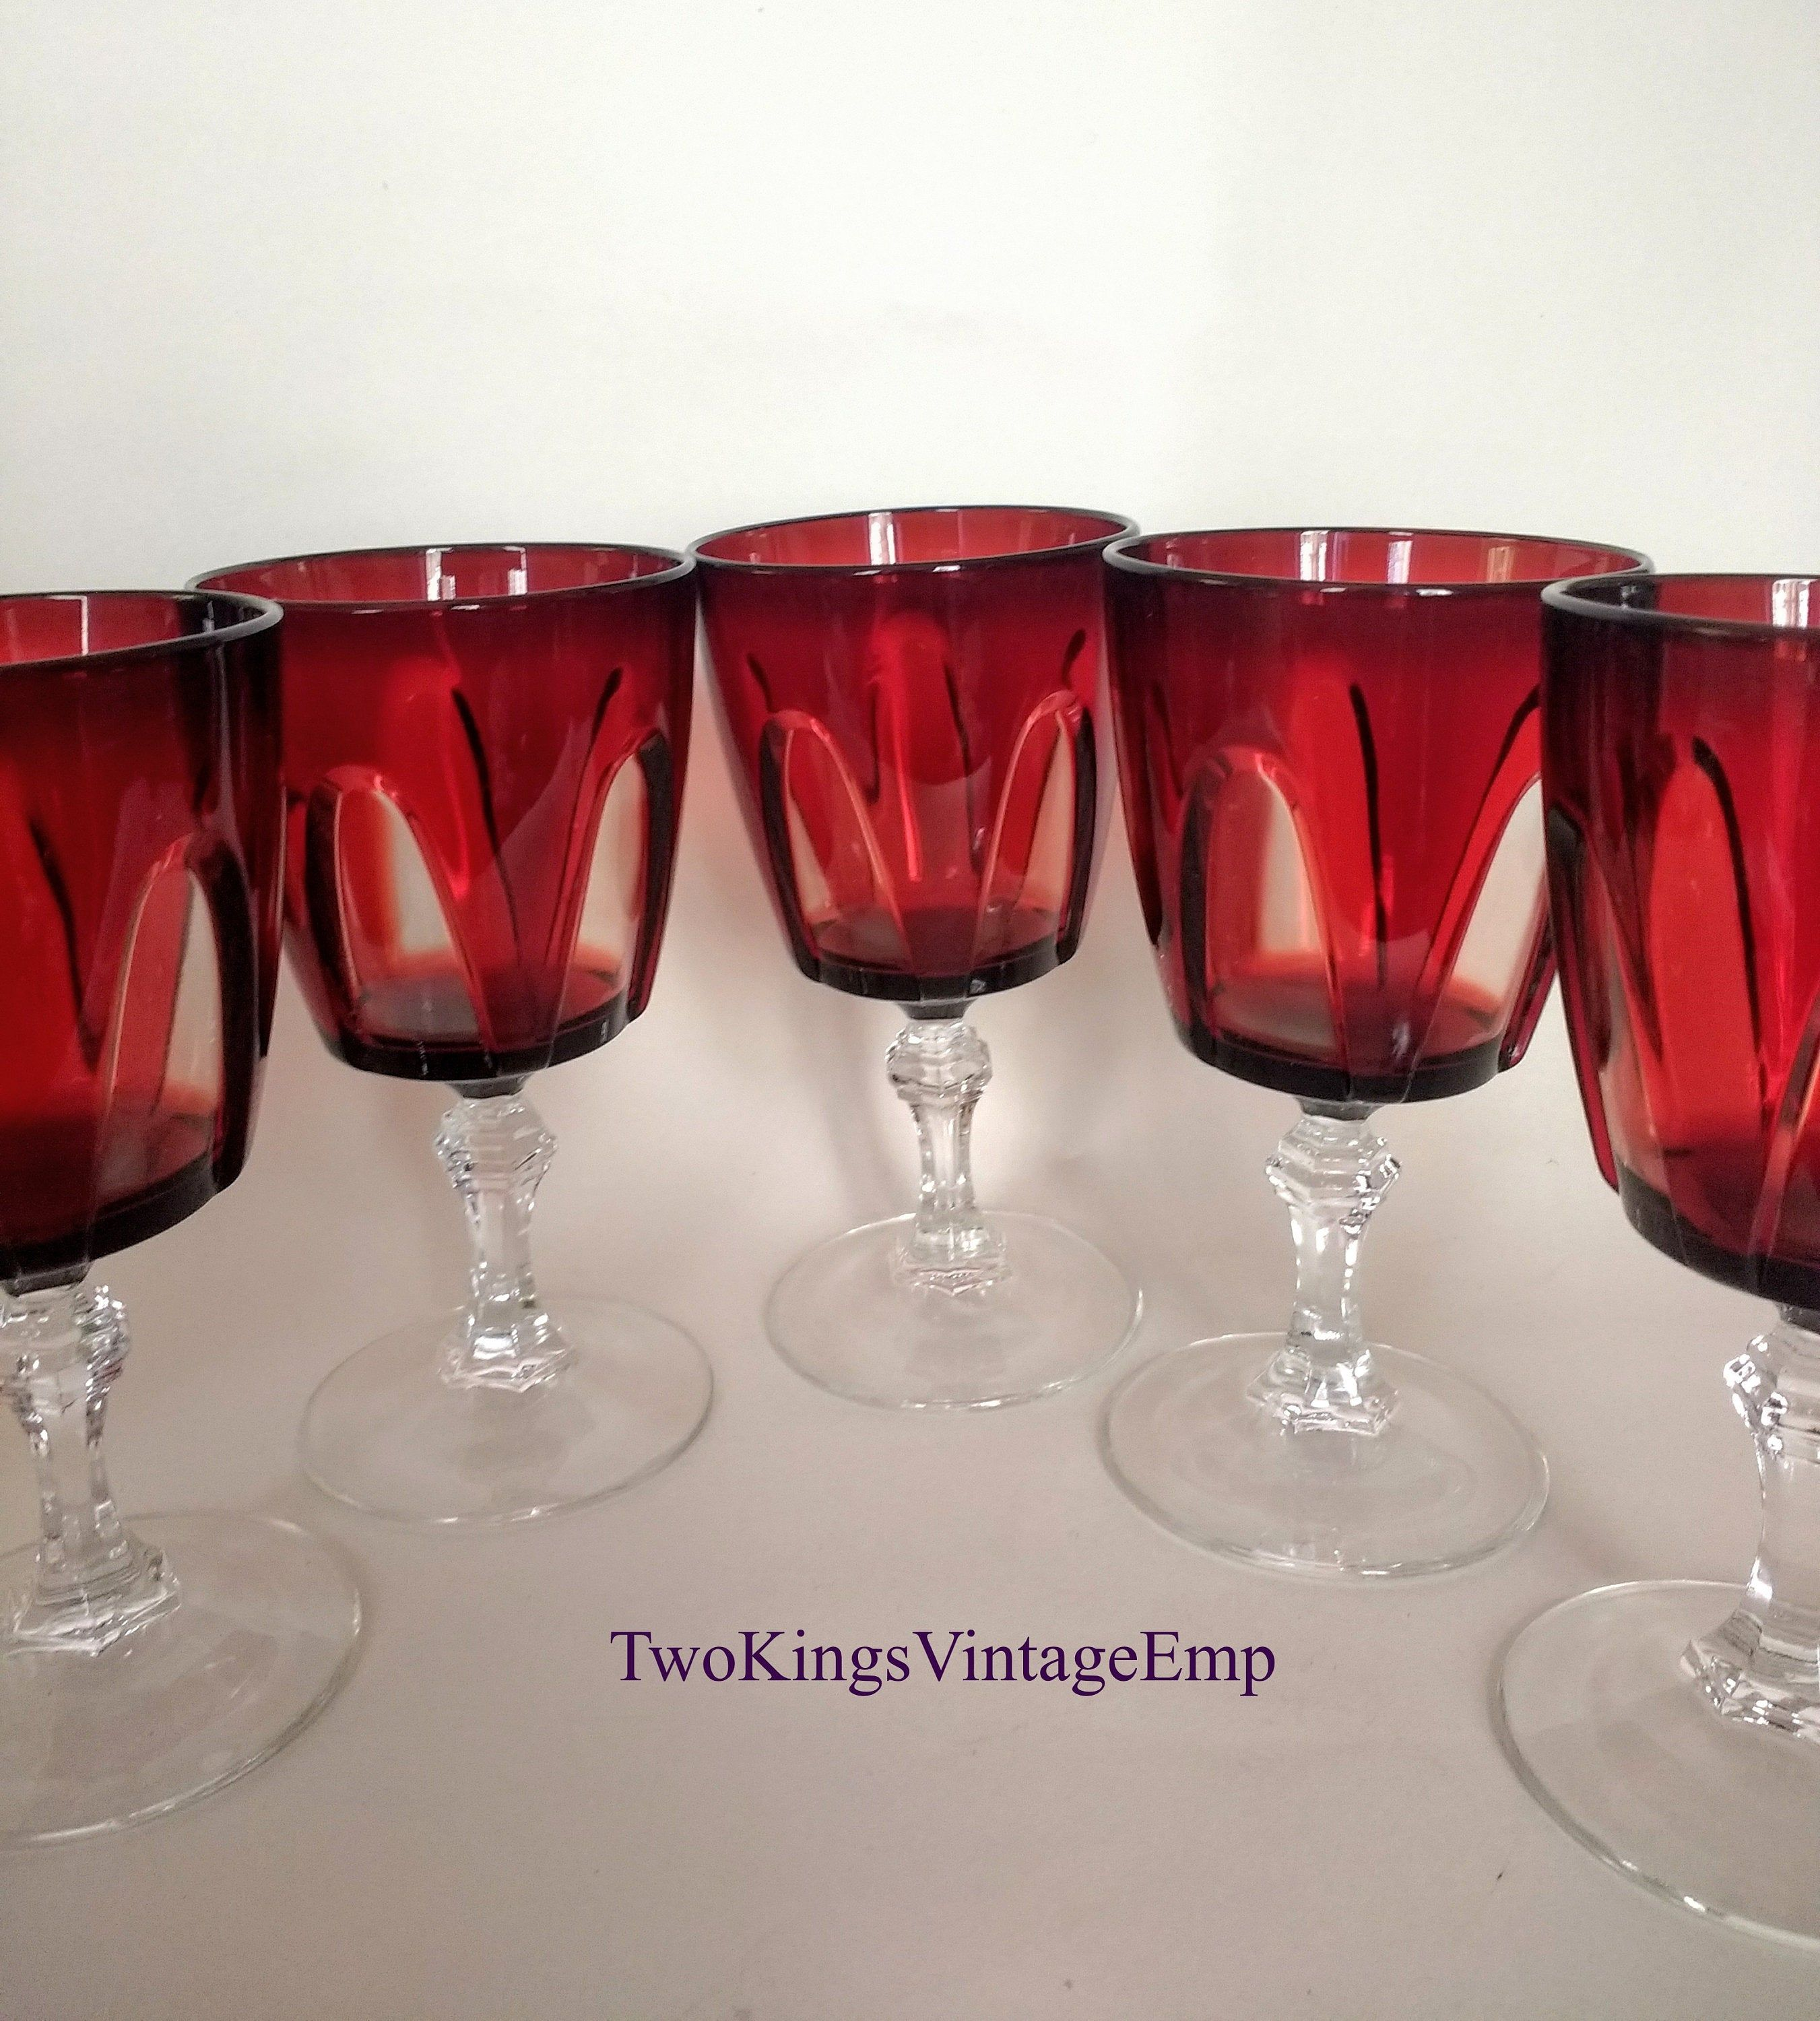 Cristal D Arques Ruby Glass Wine Glasses A Set Of 6 In 2020 Crystal Wine Glasses Red Wine Glasses Ruby Anniversary Gifts